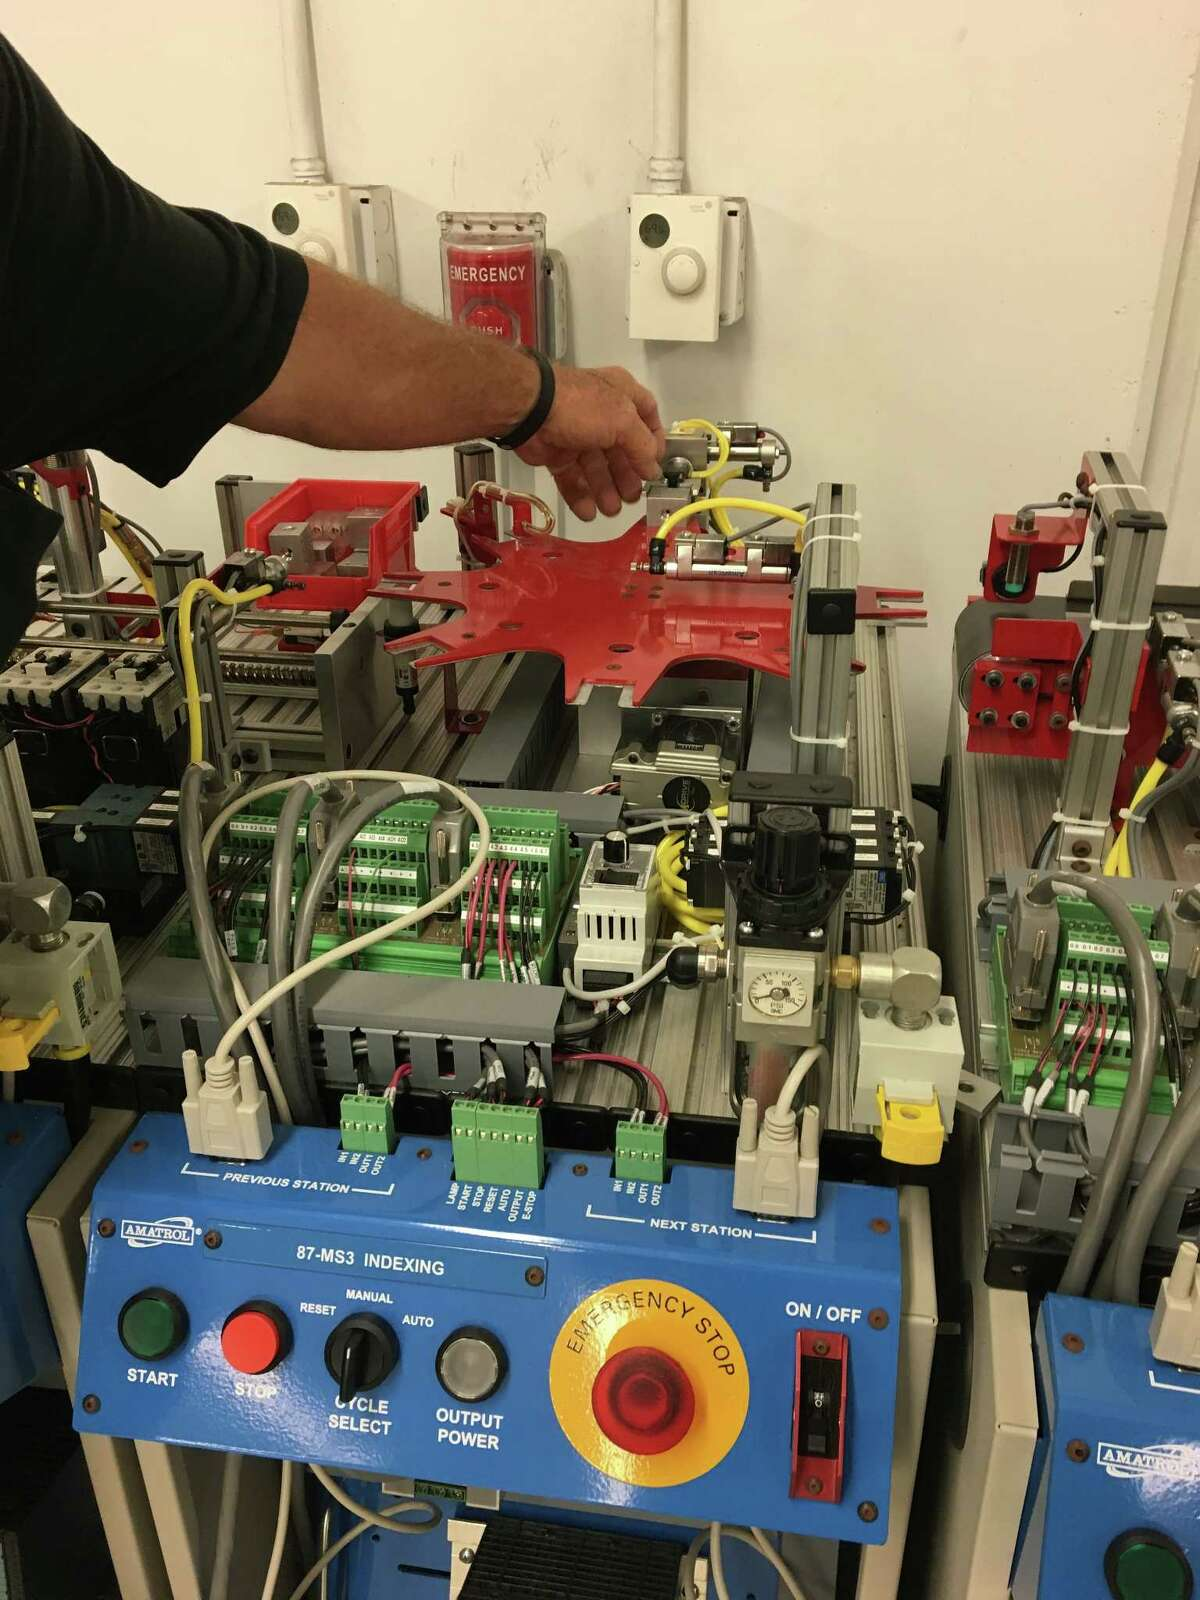 Mike Branchteaches mechatronics and students learn electronics, pneumatics, hydraulics, motors, computer controls, and heating and air-conditioning equipment.